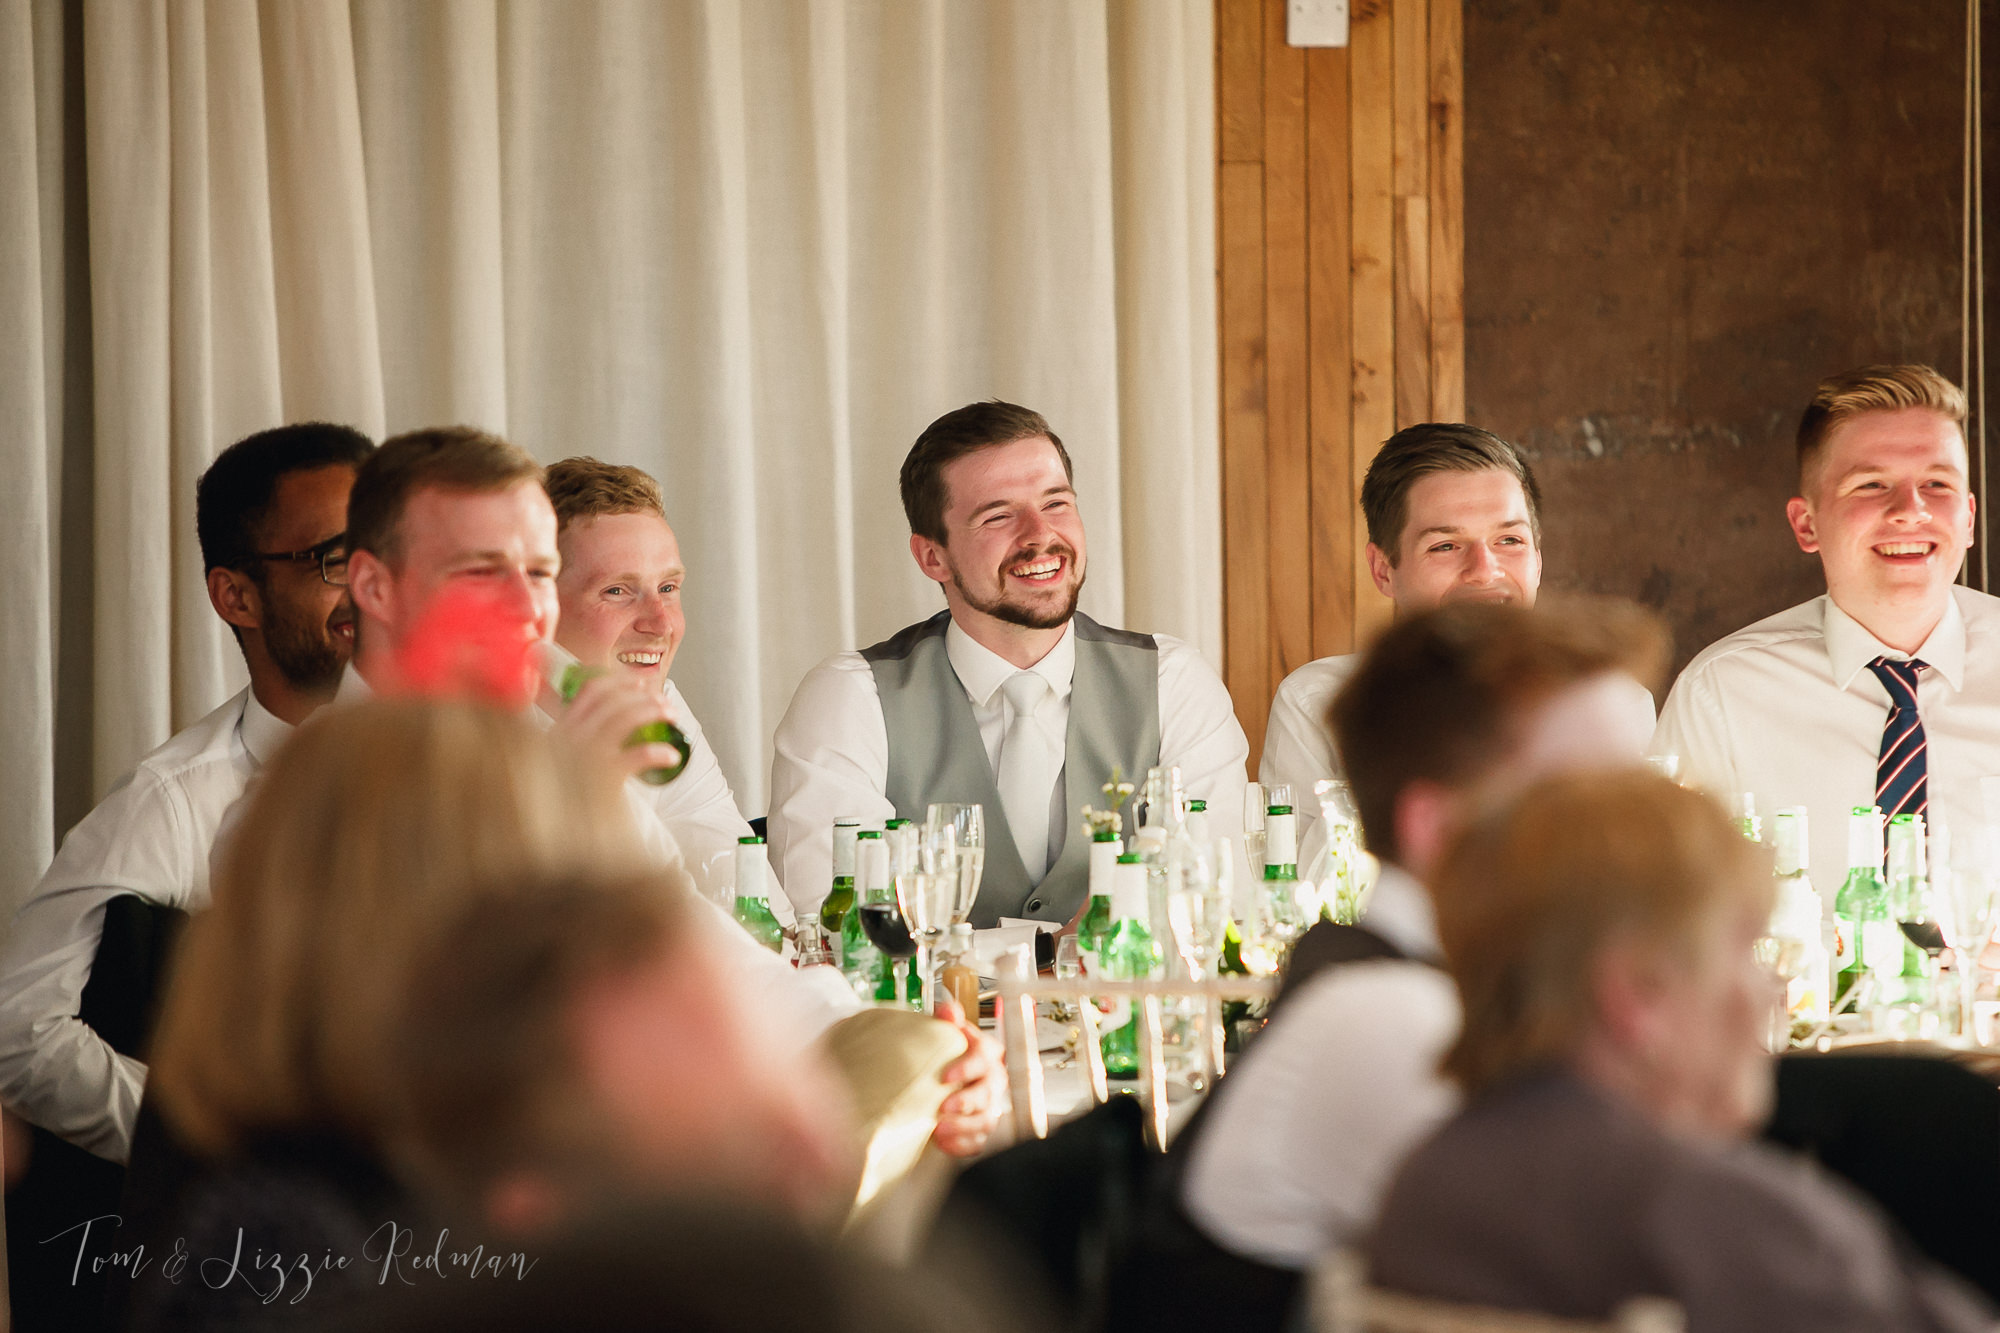 Dorset wedding photographers Tom & Lizzie Redman 056.jpg